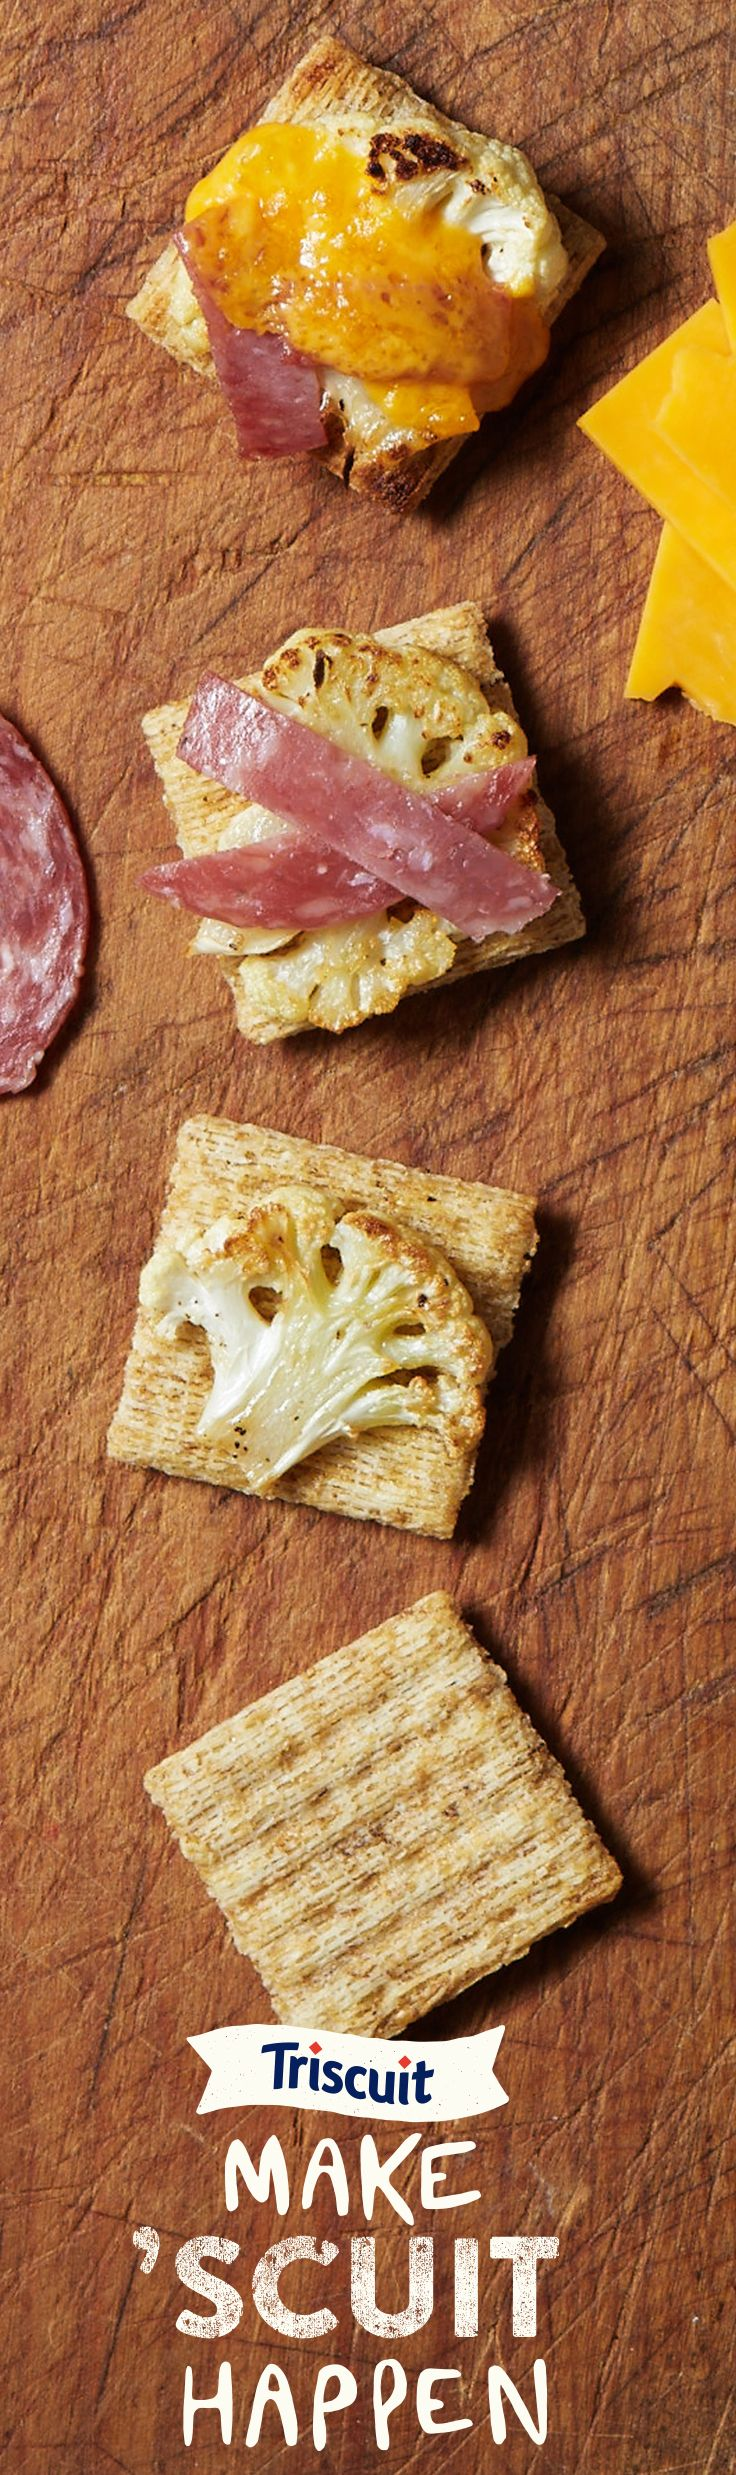 All it takes is three ingredients for a deliciously simple snack. Try salami, roasted cauliflower and cheddar cheese on a TRISCUIT cracker.